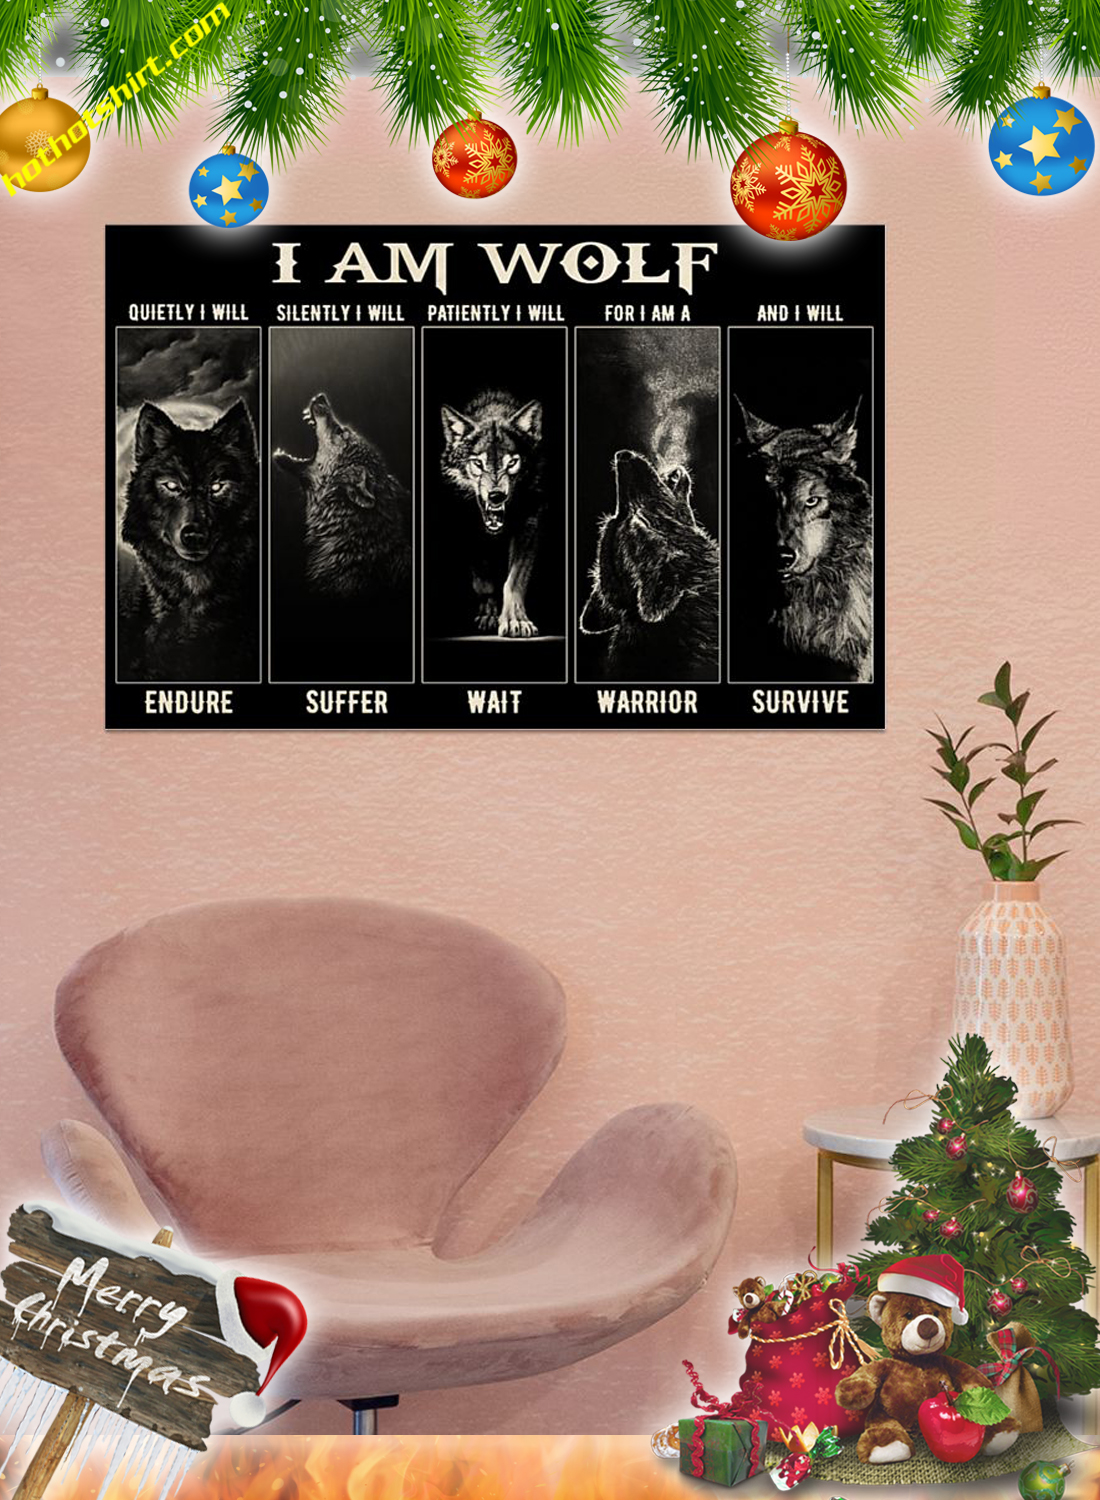 I am wolf poster 2